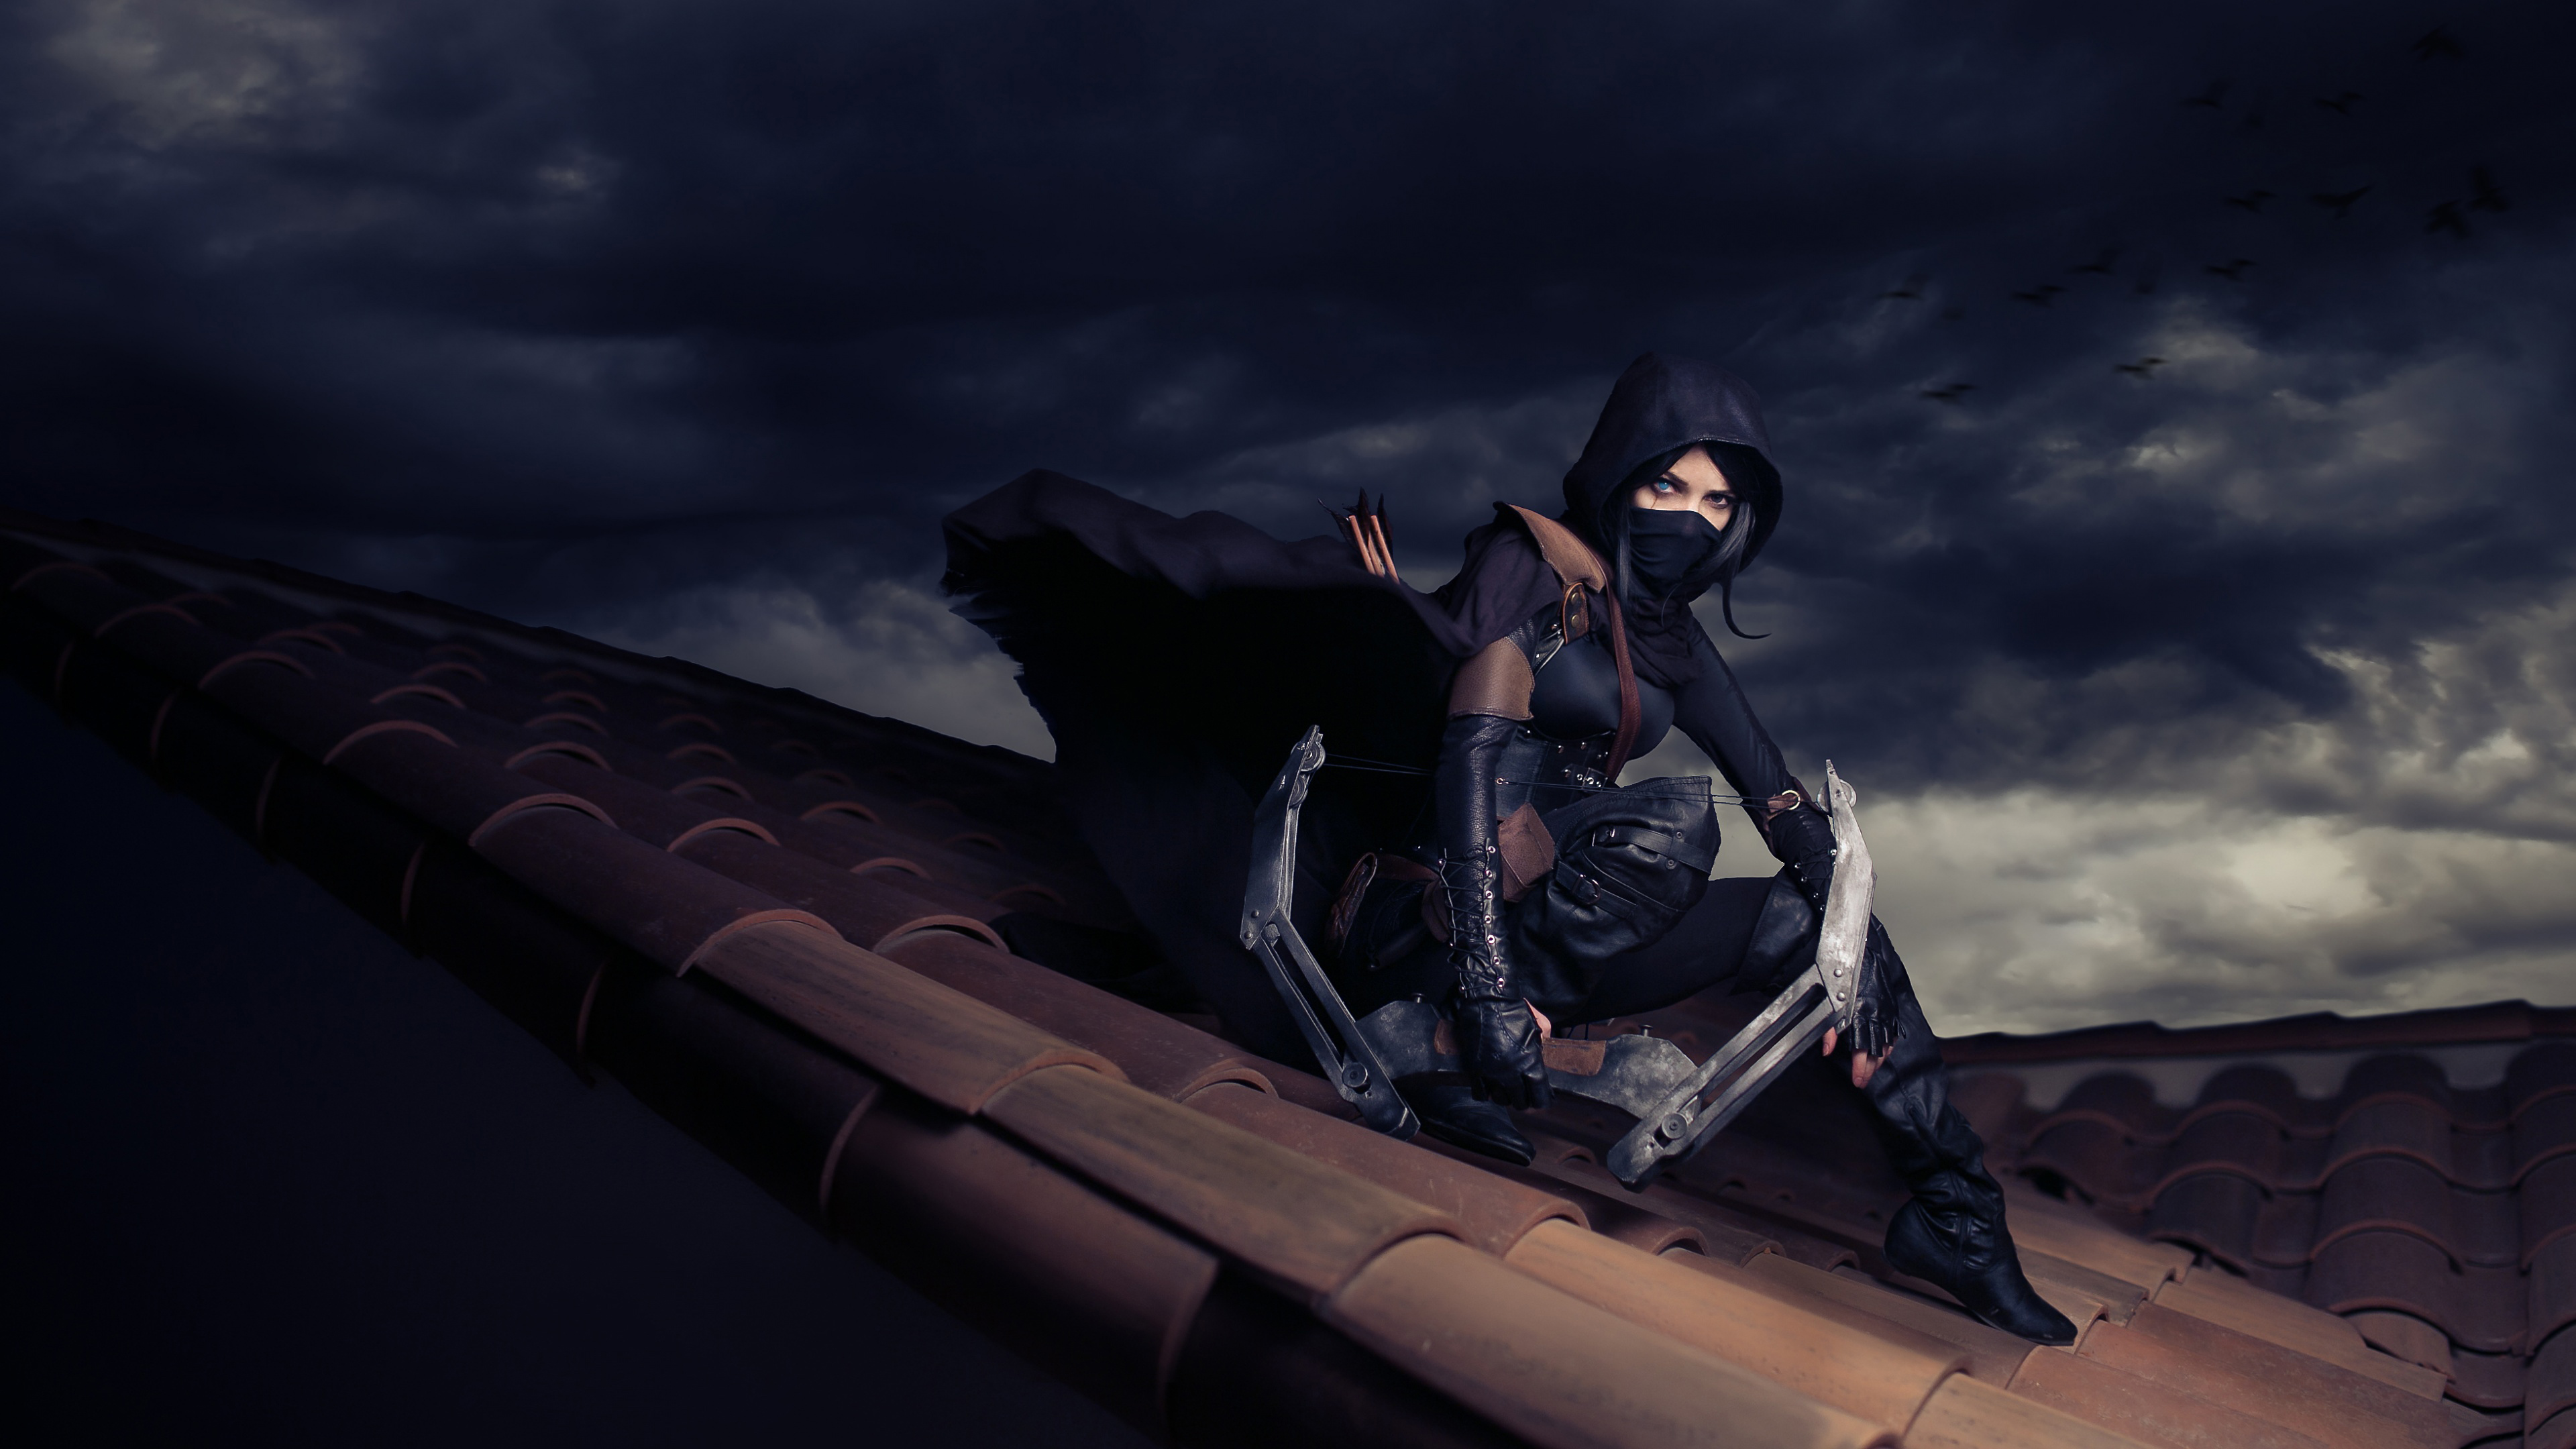 thief 3 1581274581 - Thief 3 - Thief 3 game wallpapers, Thief 3 4k wallpapers